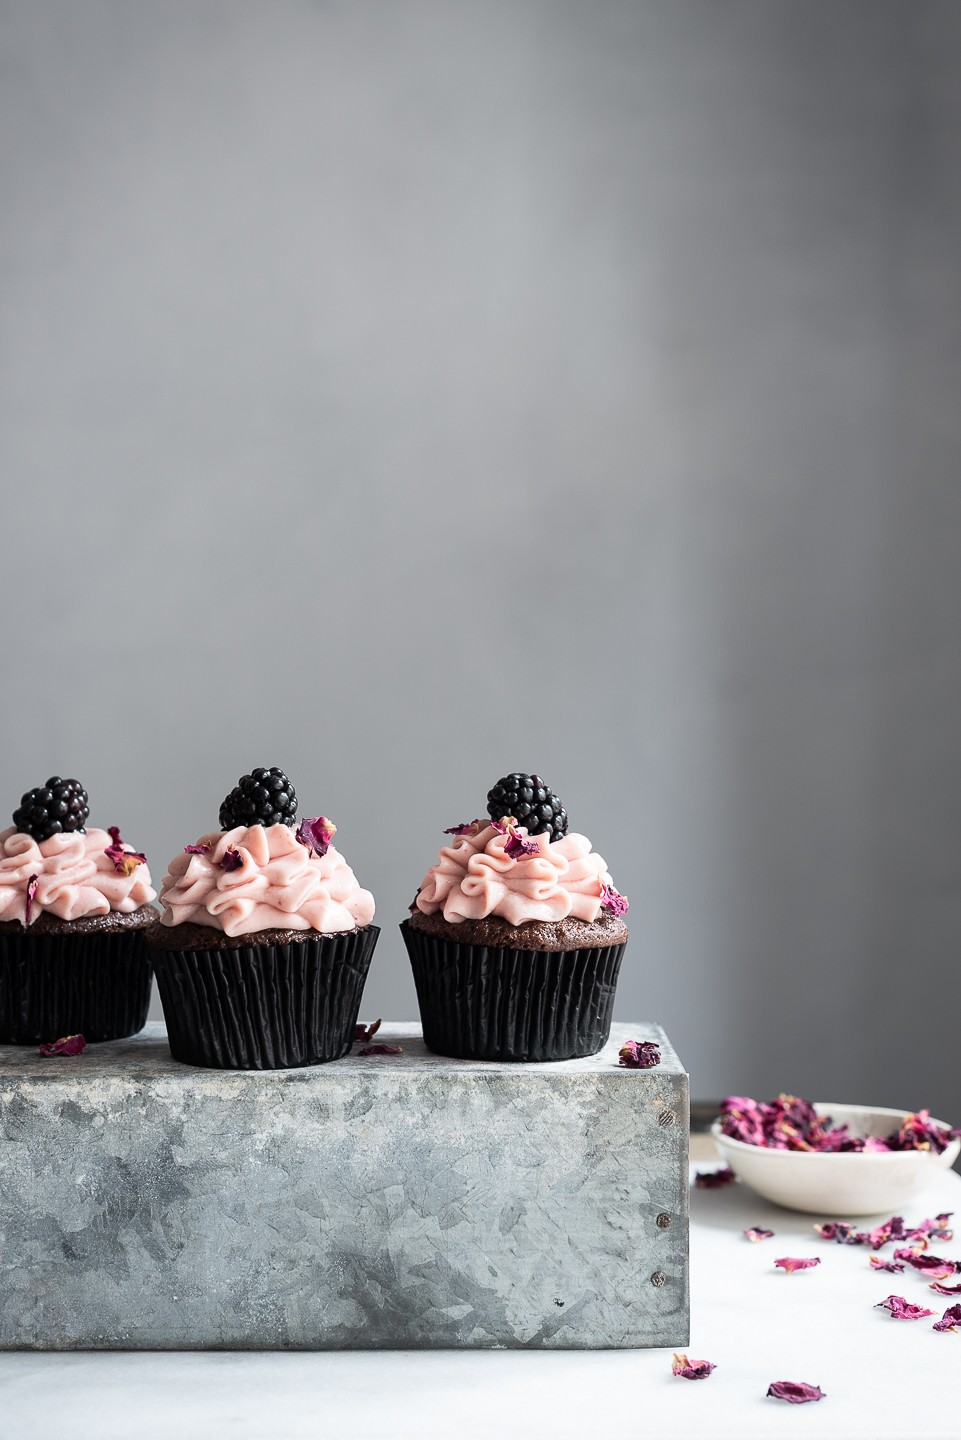 Frilled Devil's Food cupcakes